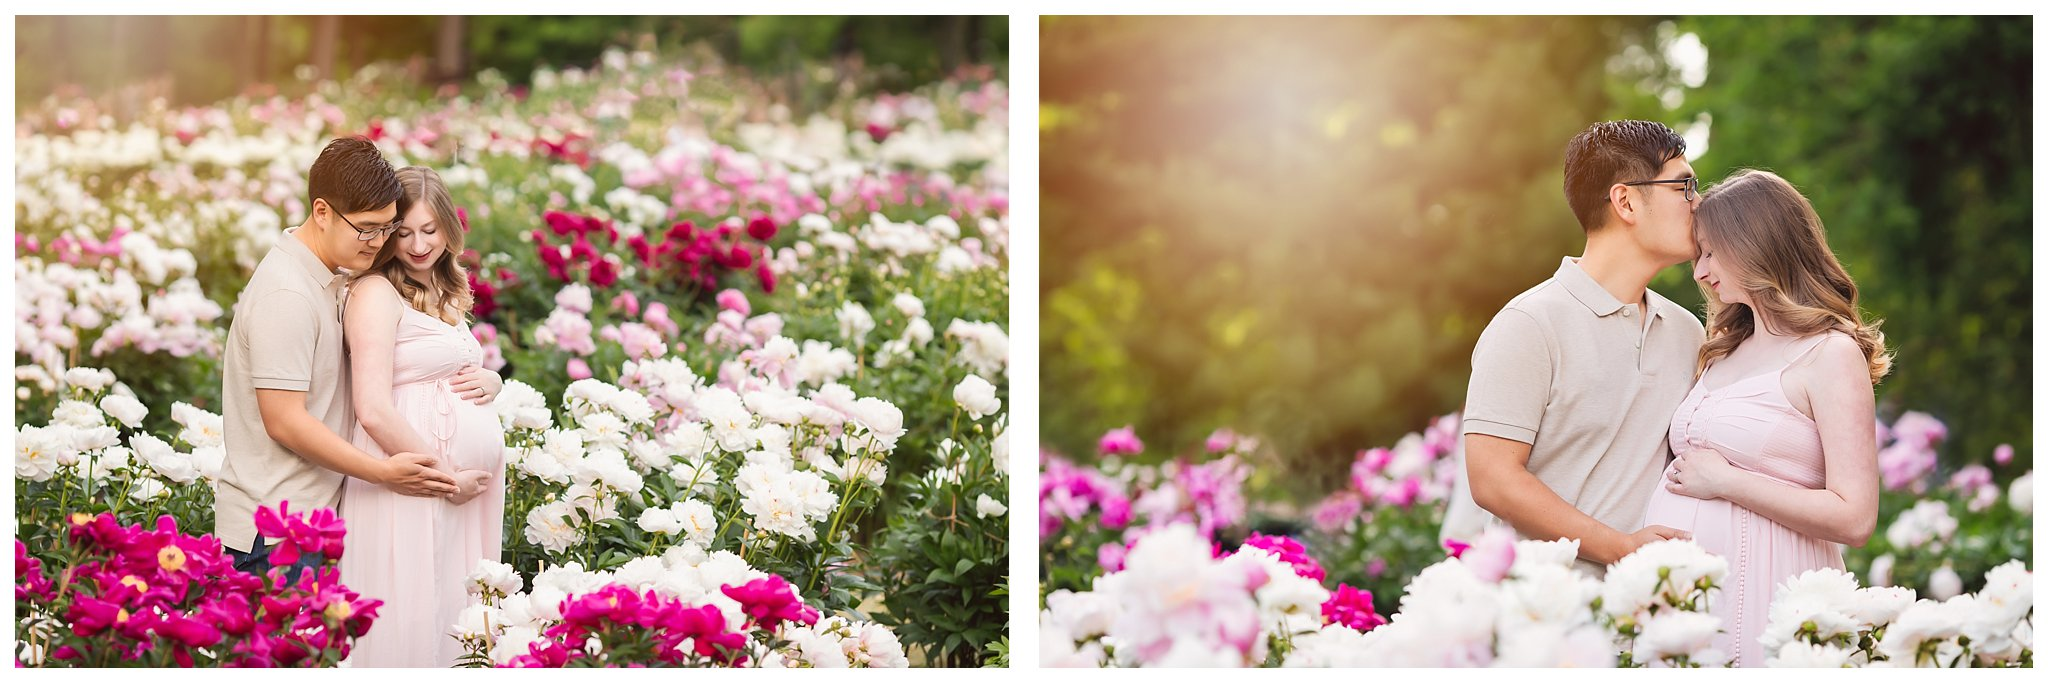 Maternity Session at the Peony Gardens | Ann Arbor Maternity Photos